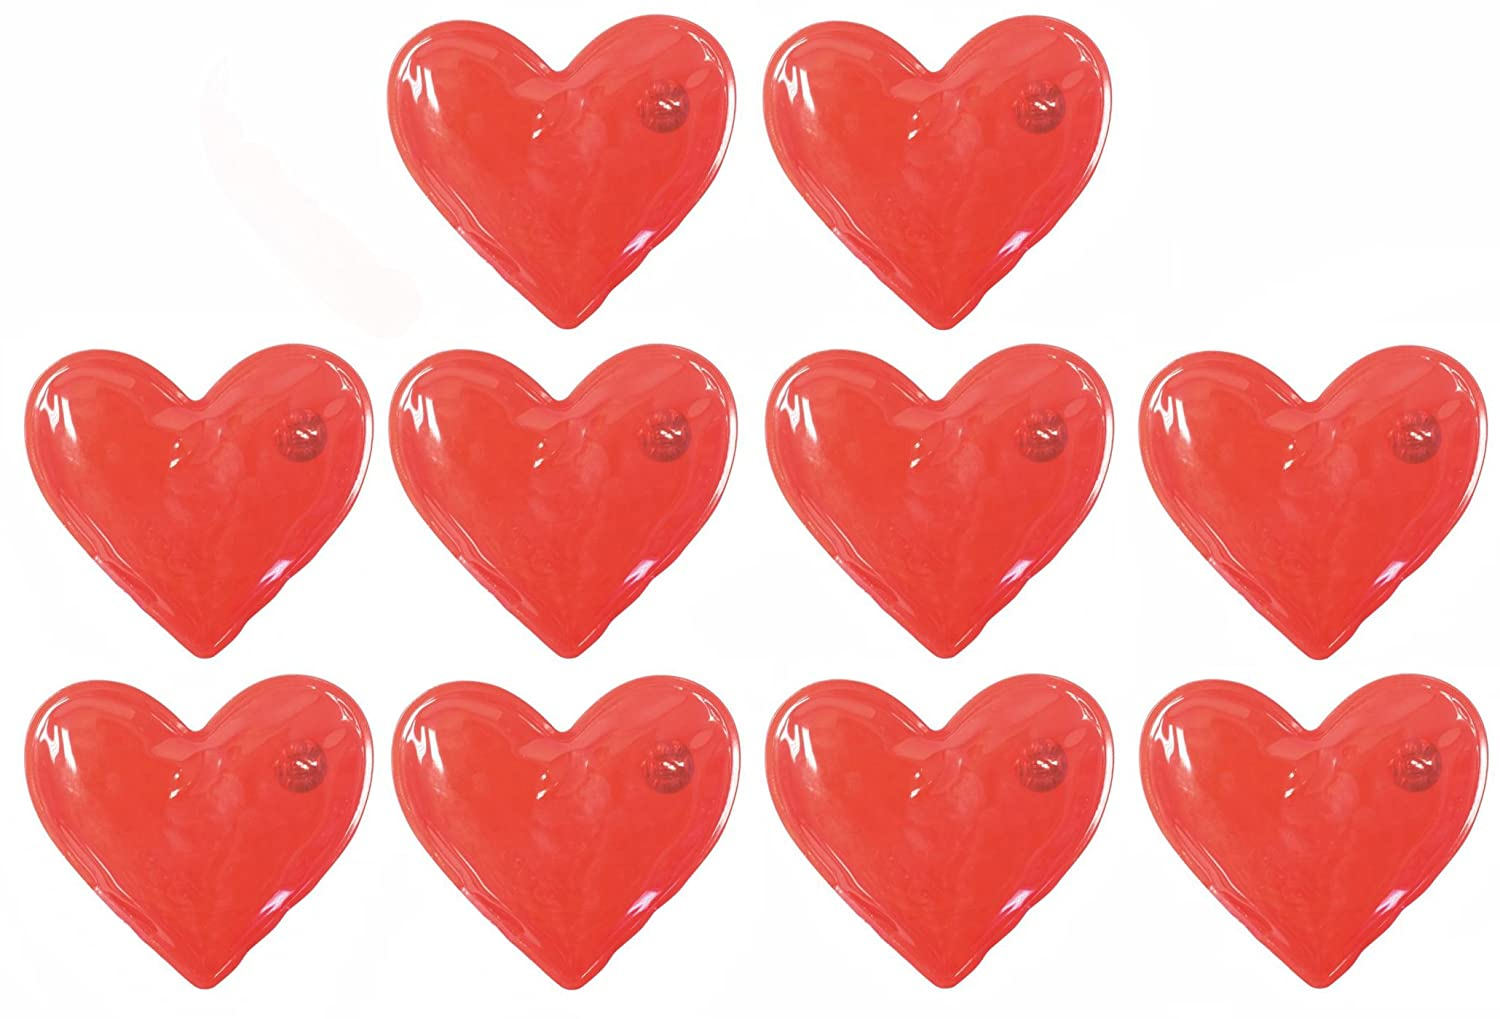 Reusable Gel Hand Warmers Red Heart Shaped Large Hand Warmers Hot Pods 1